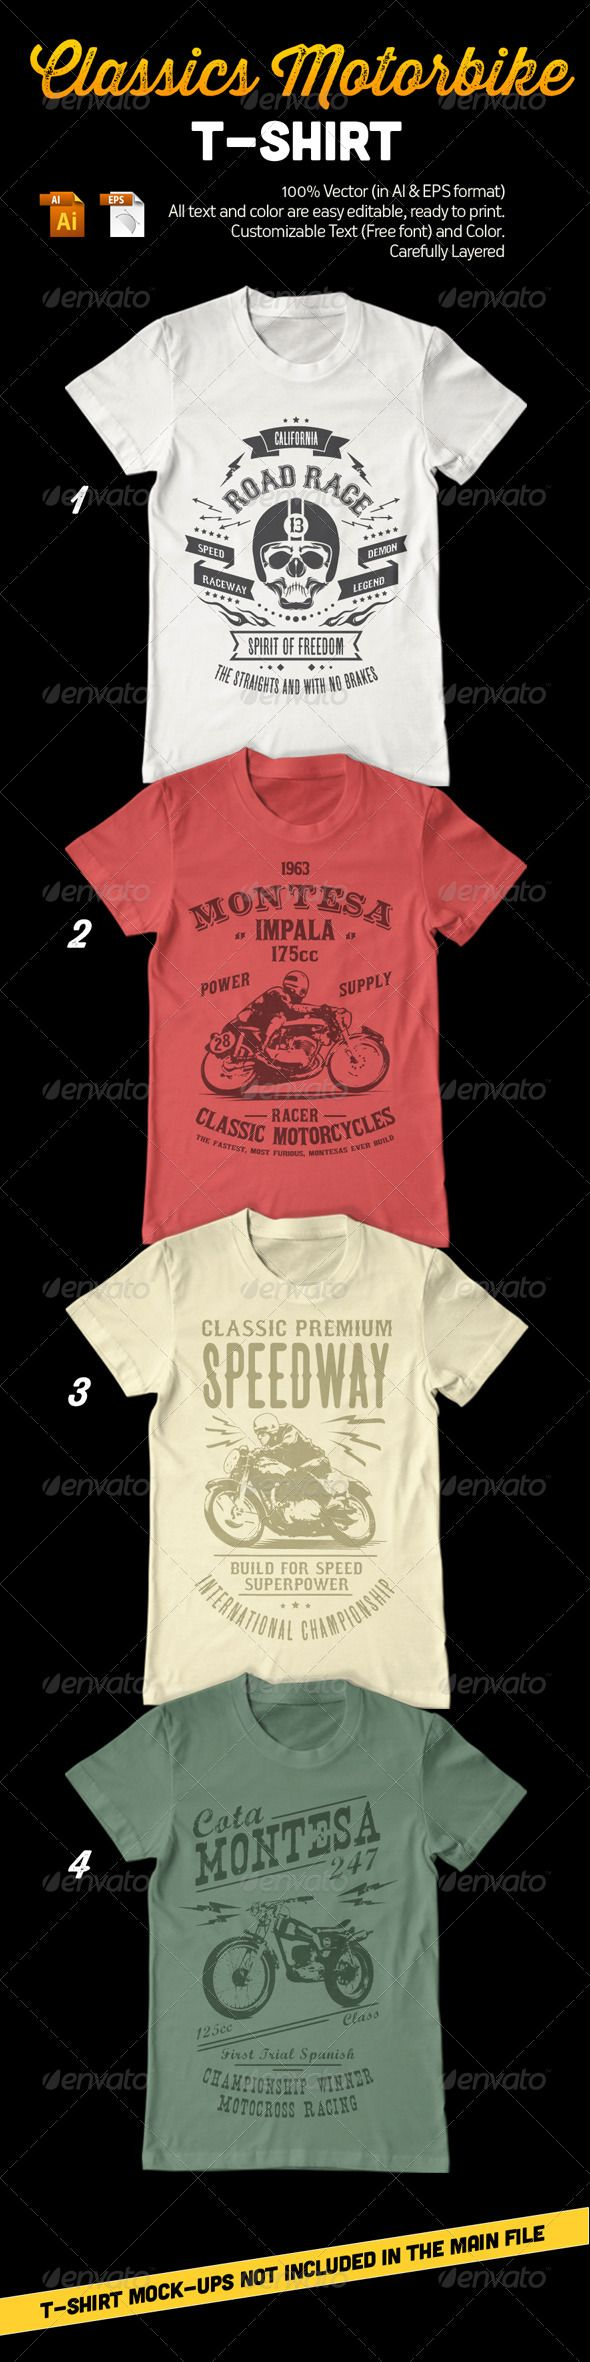 Design your own t shirt free download - Classic Motorbike T Shirt